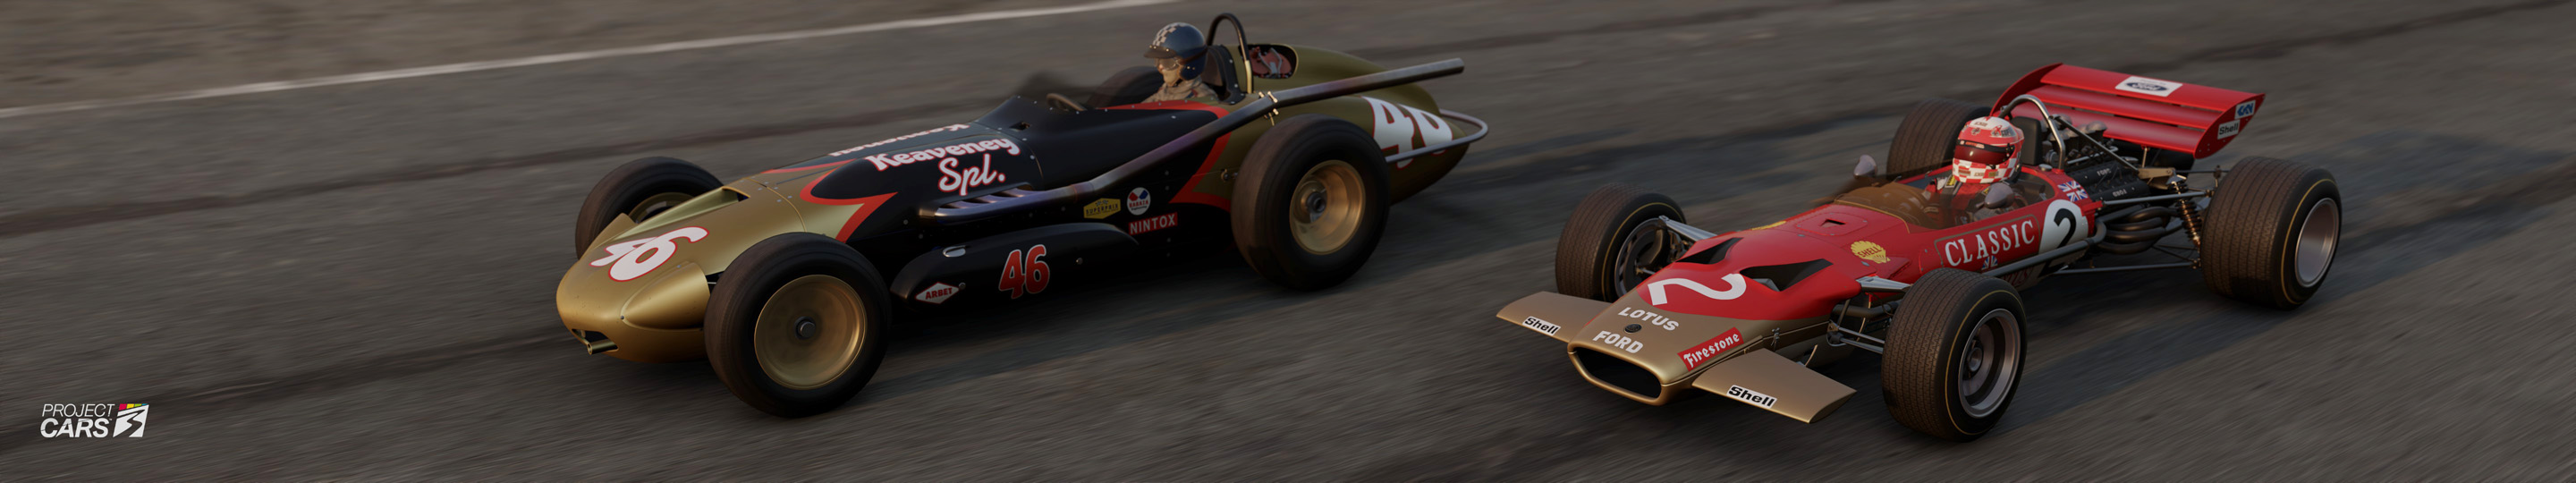 0 PROJECT CARS 3 LOTUS 49C at SILVERSTONE CLASSIC GP copy.jpg